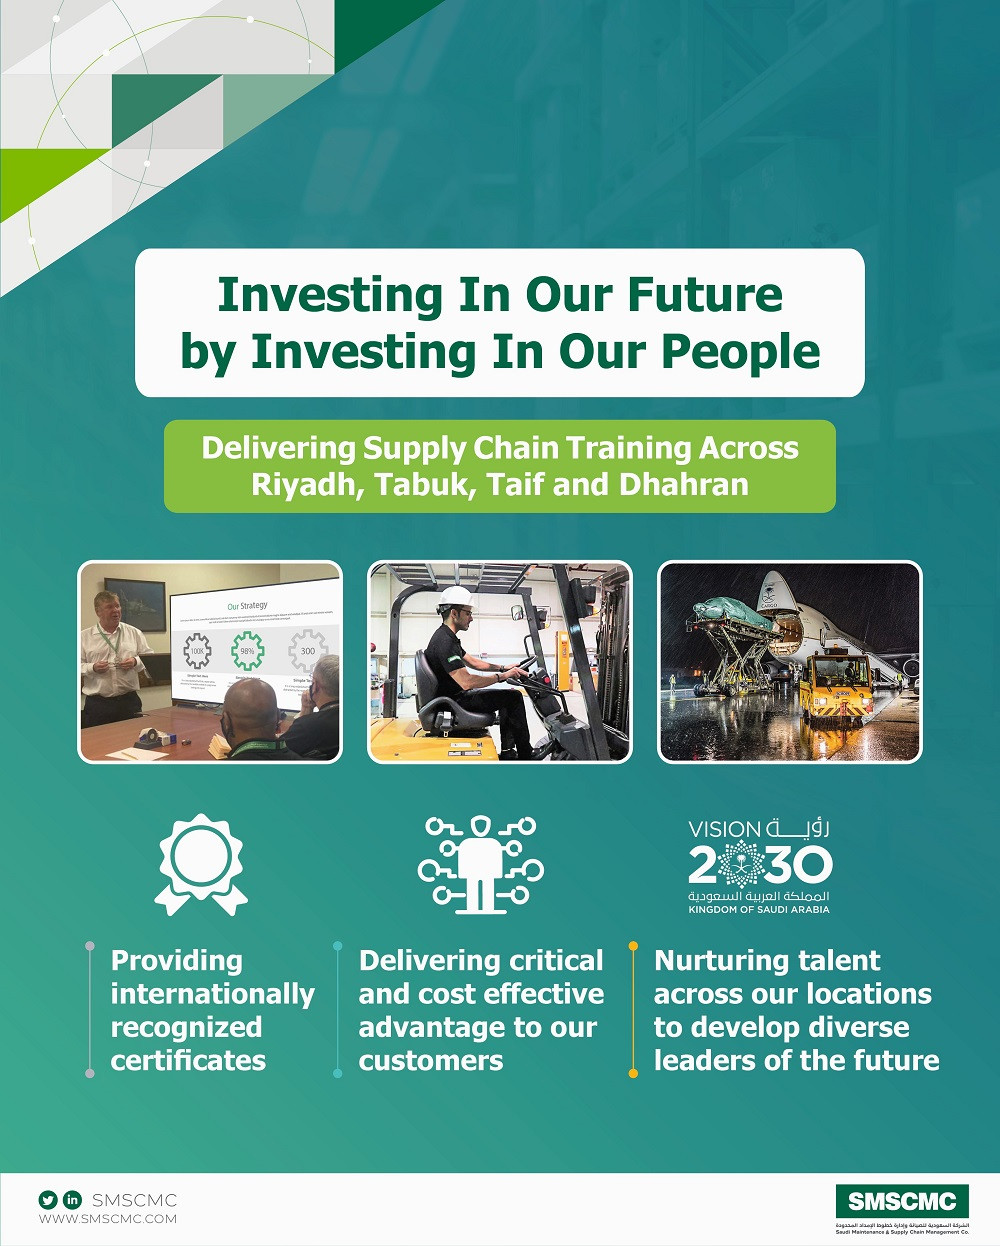 Investing In Our Future by Investing In Our People